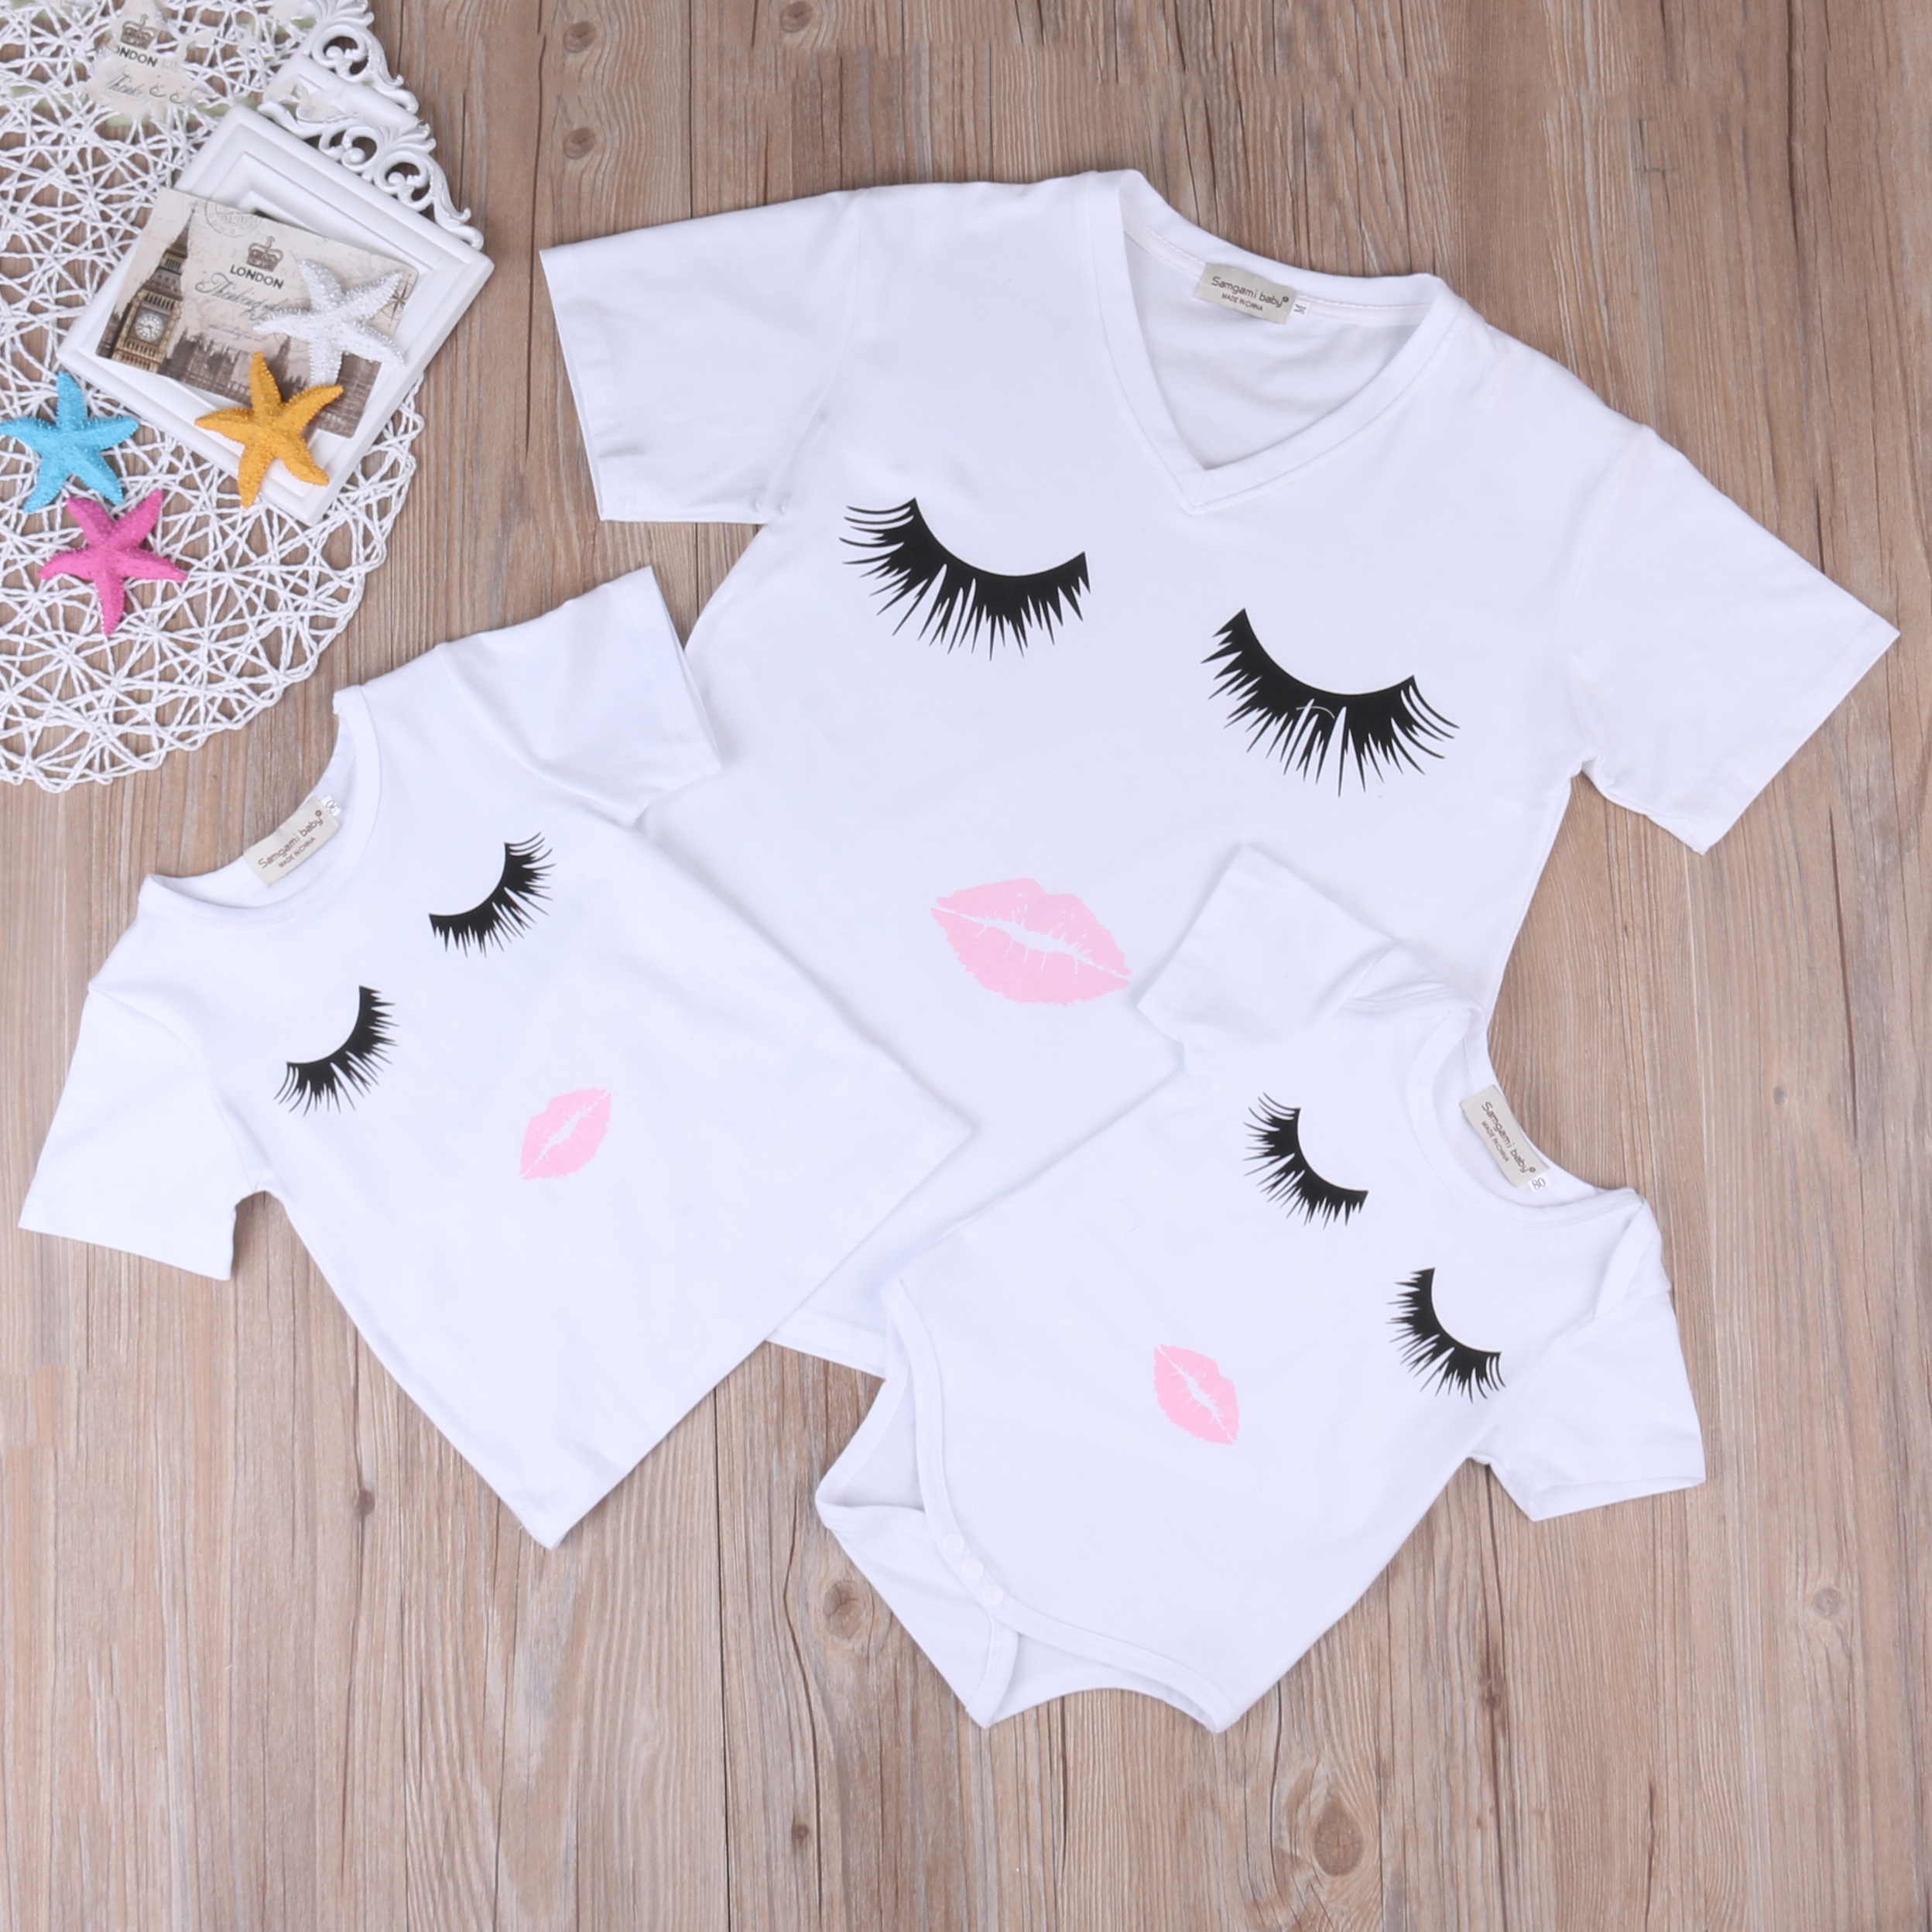 Family Matching Outfits Mother and Daughter Short Sleeve T-shirt Eyelash Lips Printed Tops Cotton Fashion White T-shirts Clothes